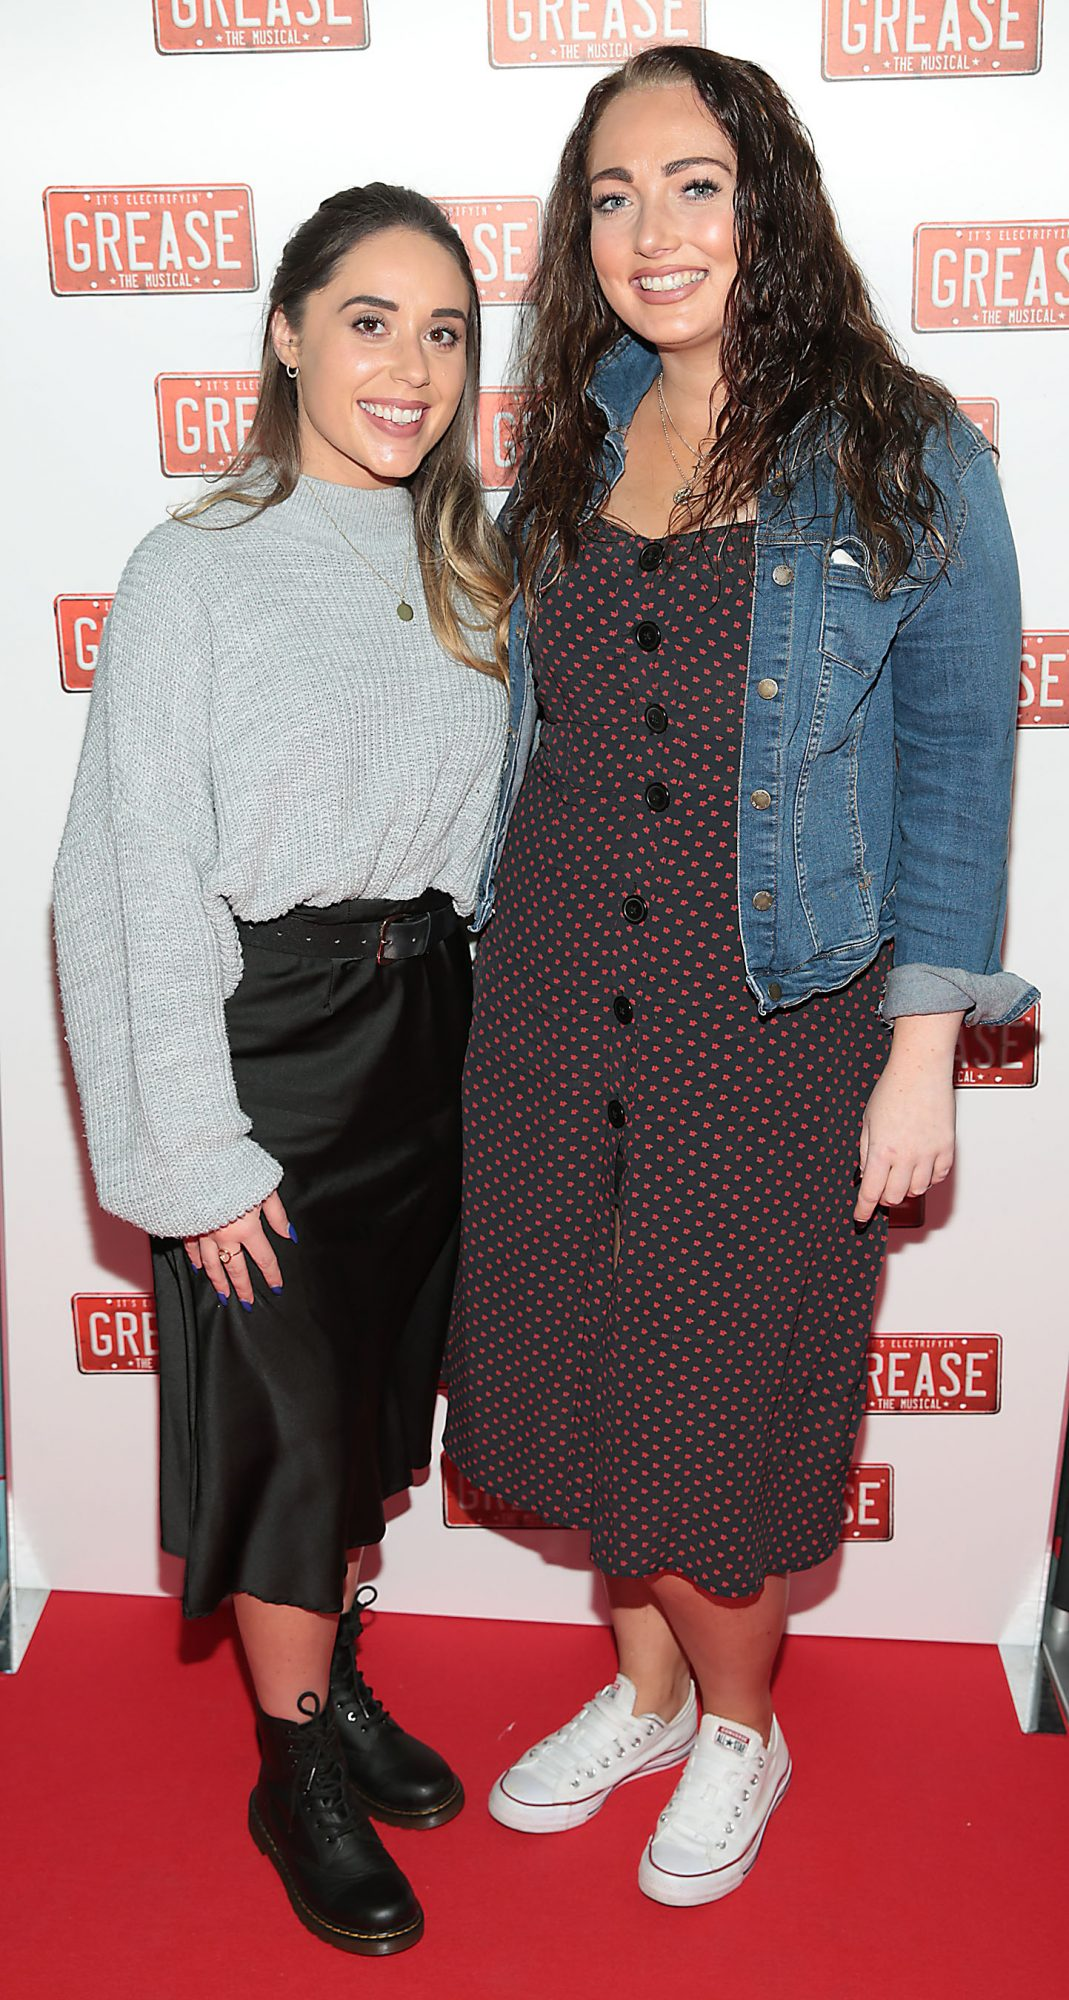 Kate Carr and Leah Fitzsimons pictured at the opening night of the musical Grease at the Bord Gais Energy Theatre, Dublin. Pic: Brian McEvoy